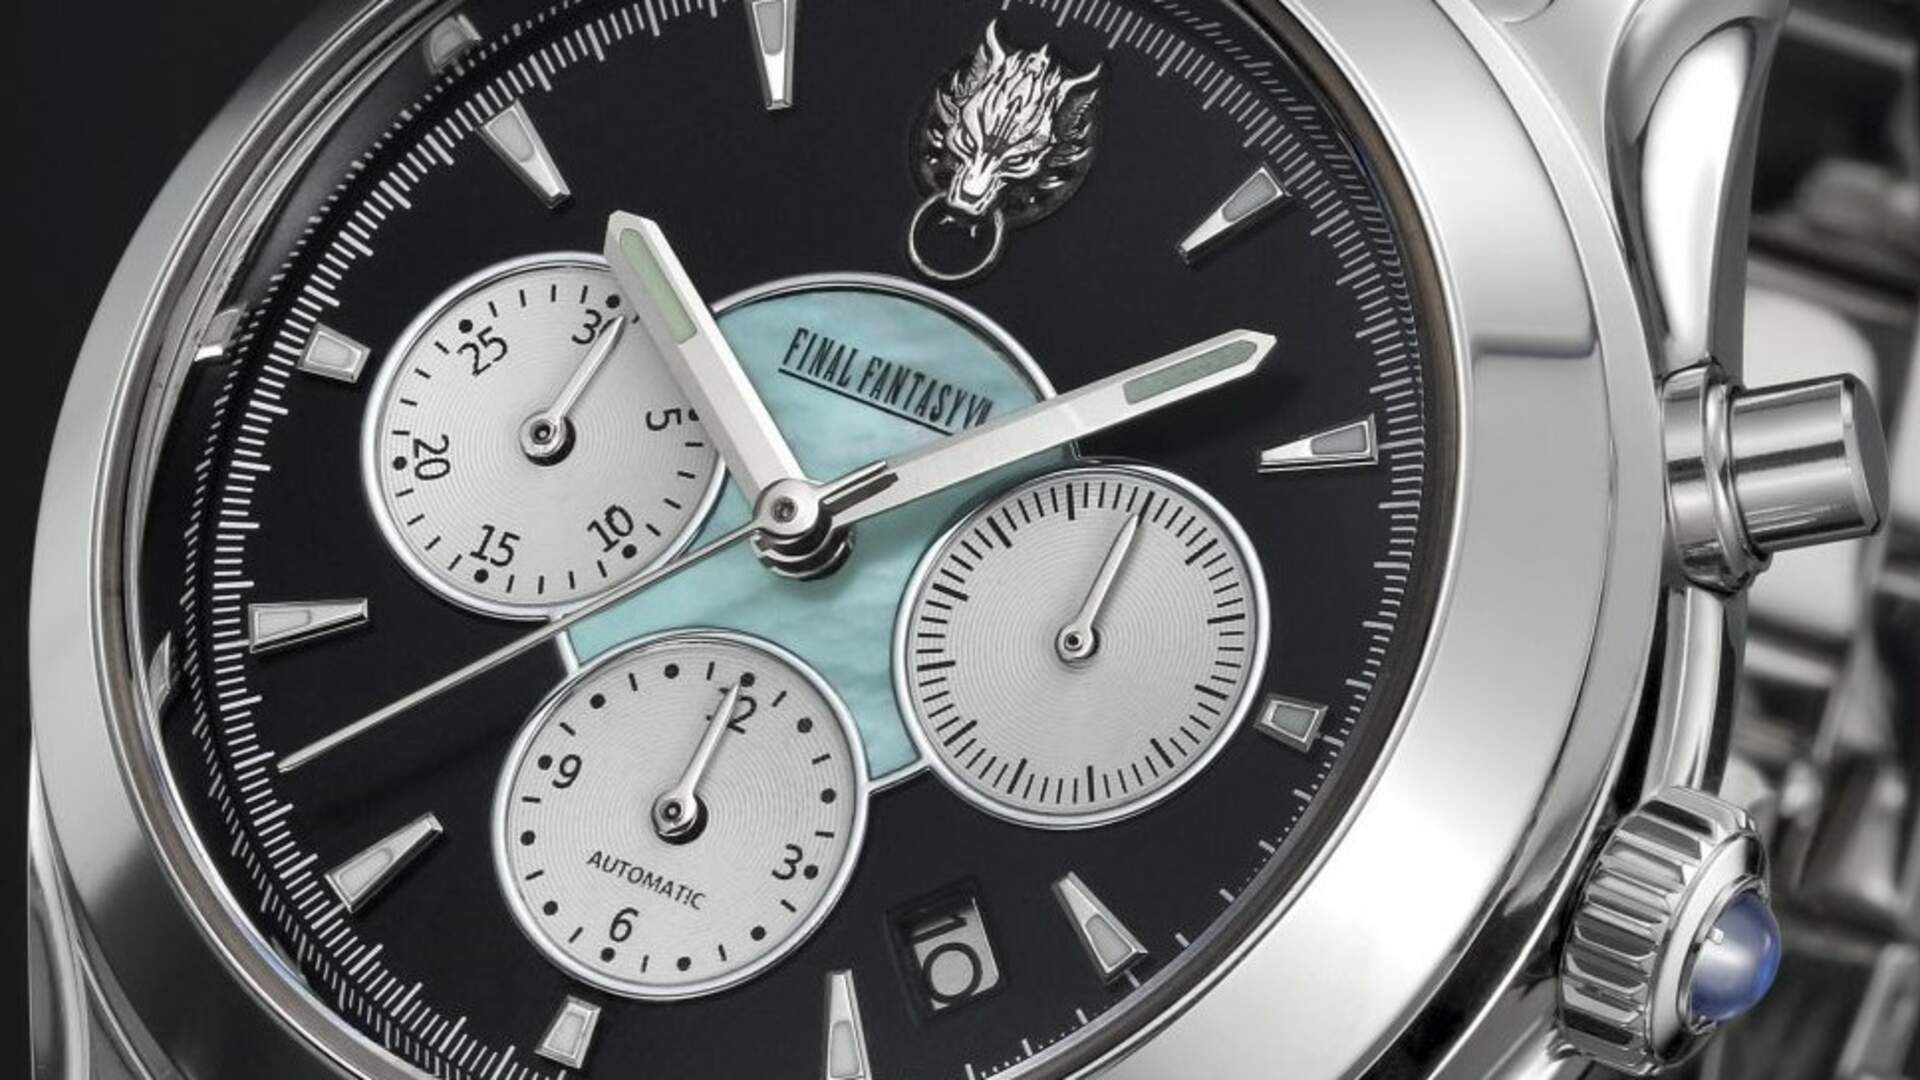 You're Not a Real Final Fantasy 7 Fan Until You Spend $2500 on These Watches